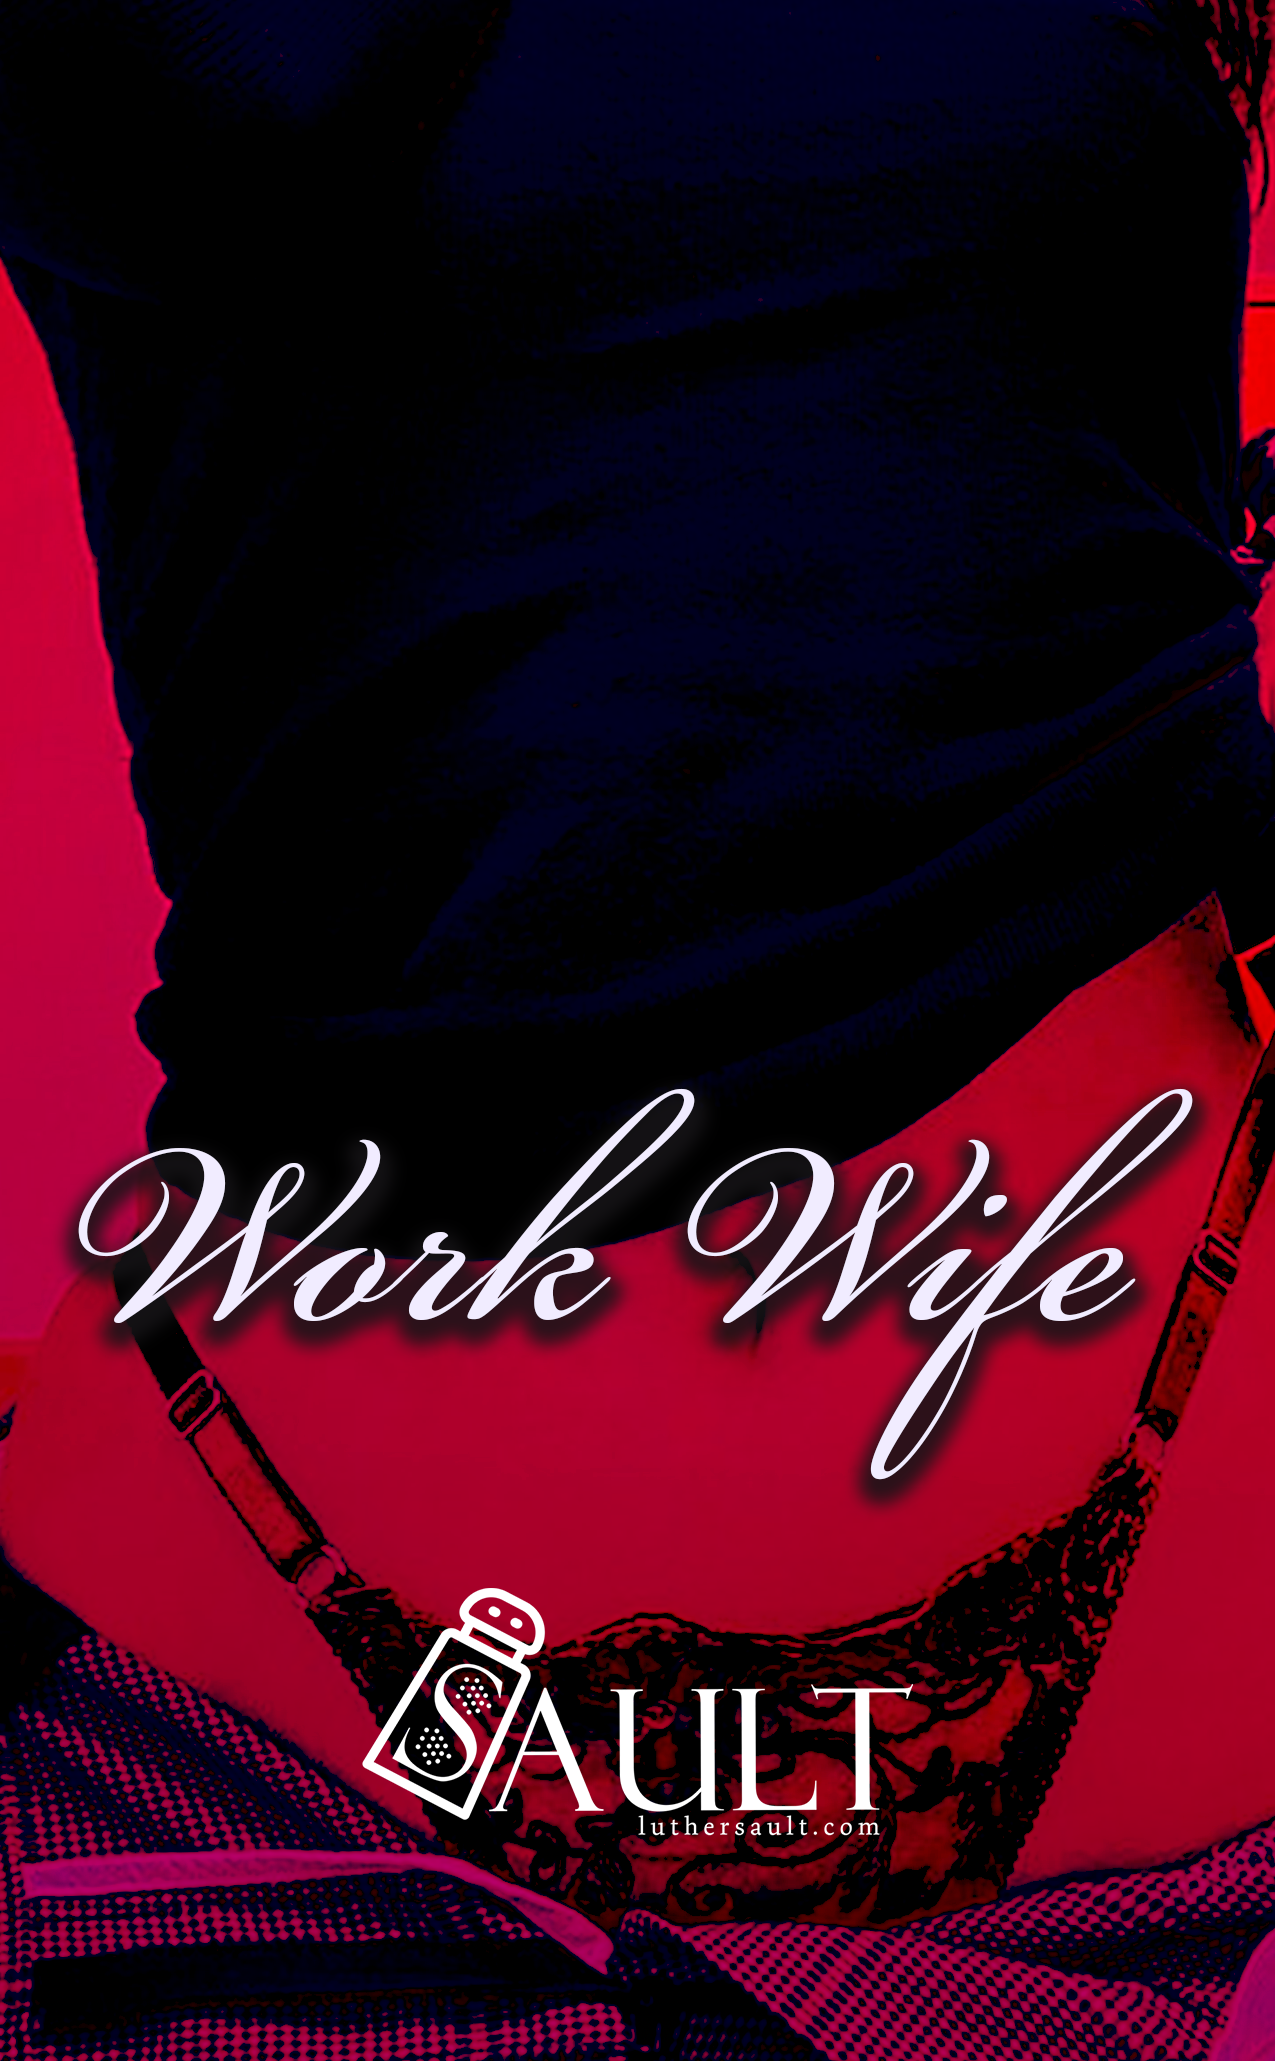 The Work Wife Official Story Cover 2